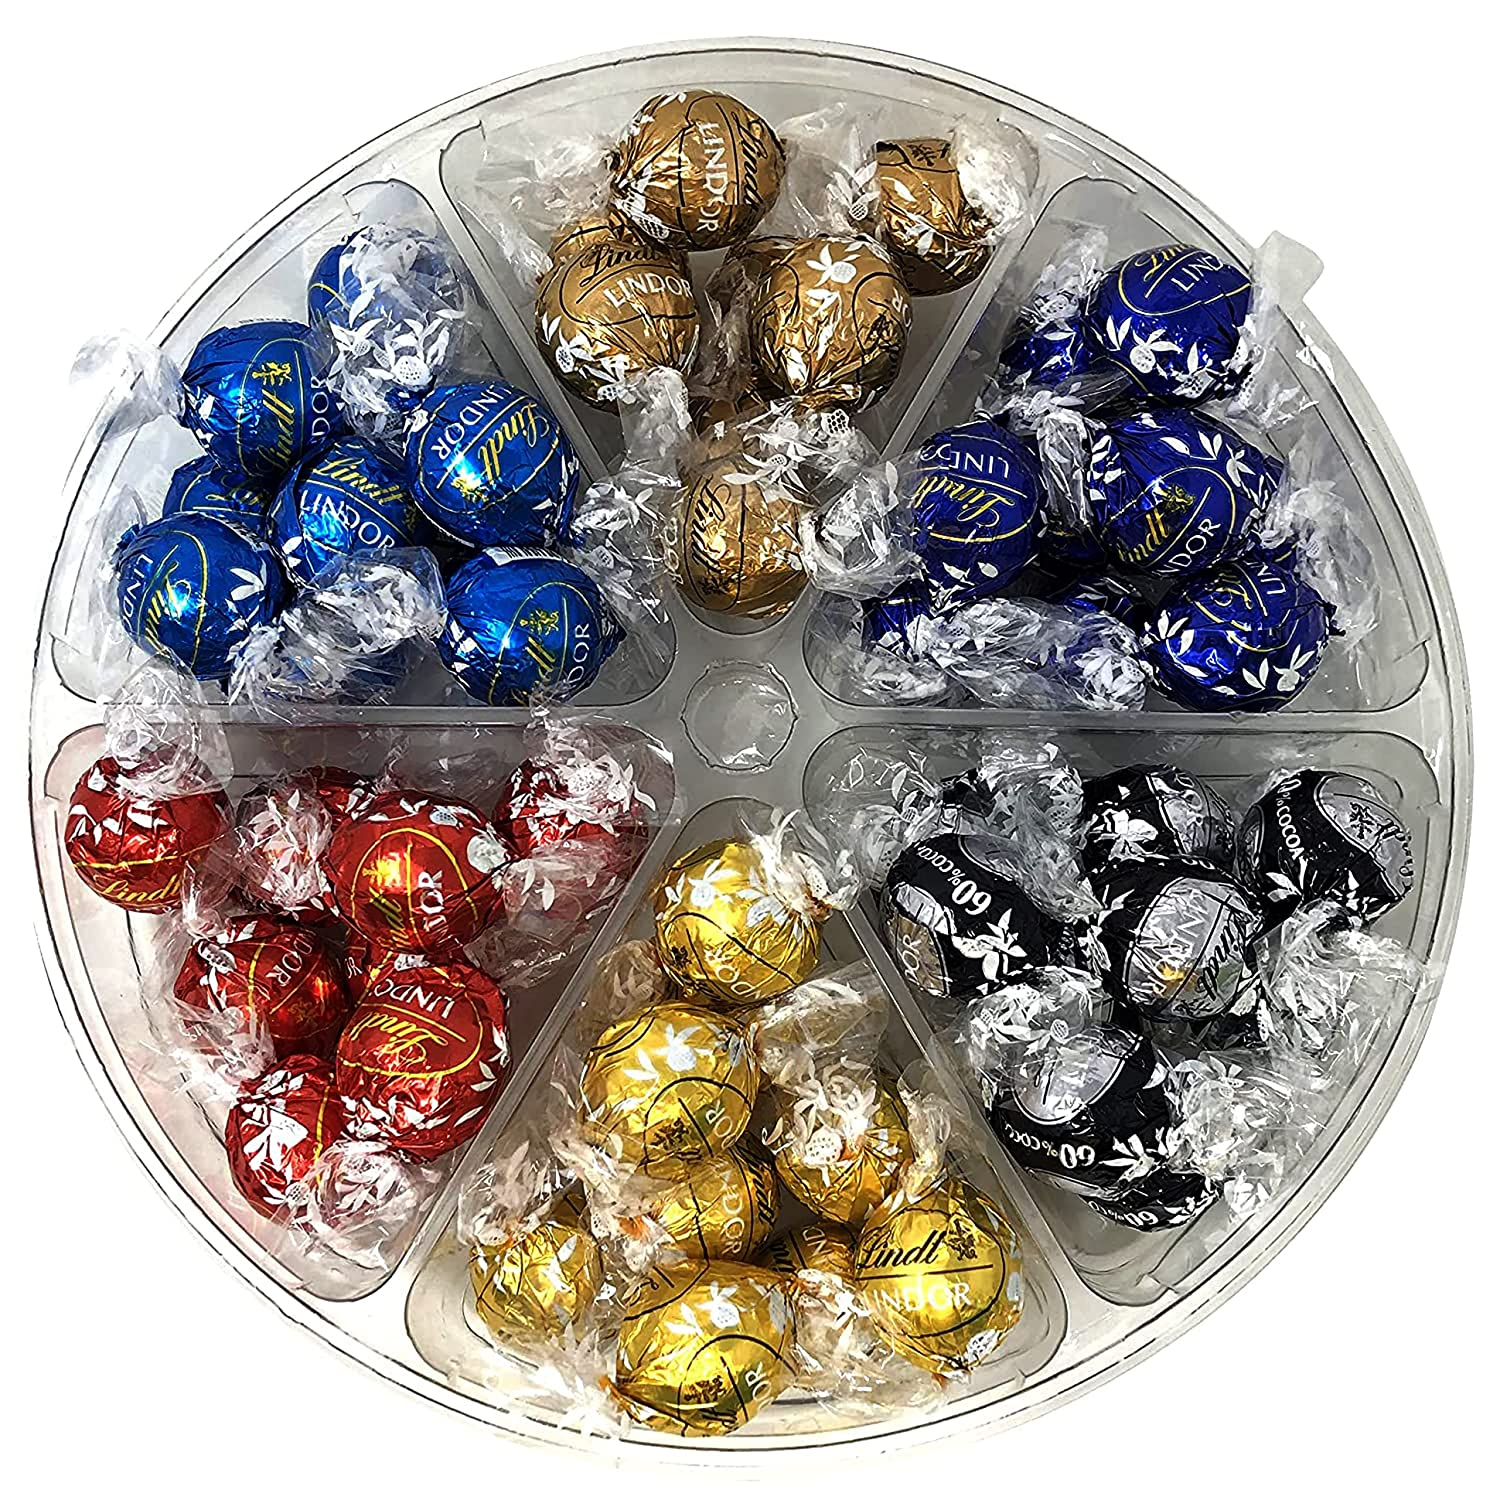 Mother's Day Chocolate Arrangement Gift Platter, Assorted Flavors Of Premium Chocolate Truffles In 6 Sectional Platter, Great Gifts for Corporate, Birthday, Mother's Day, Father's Day, Care Package